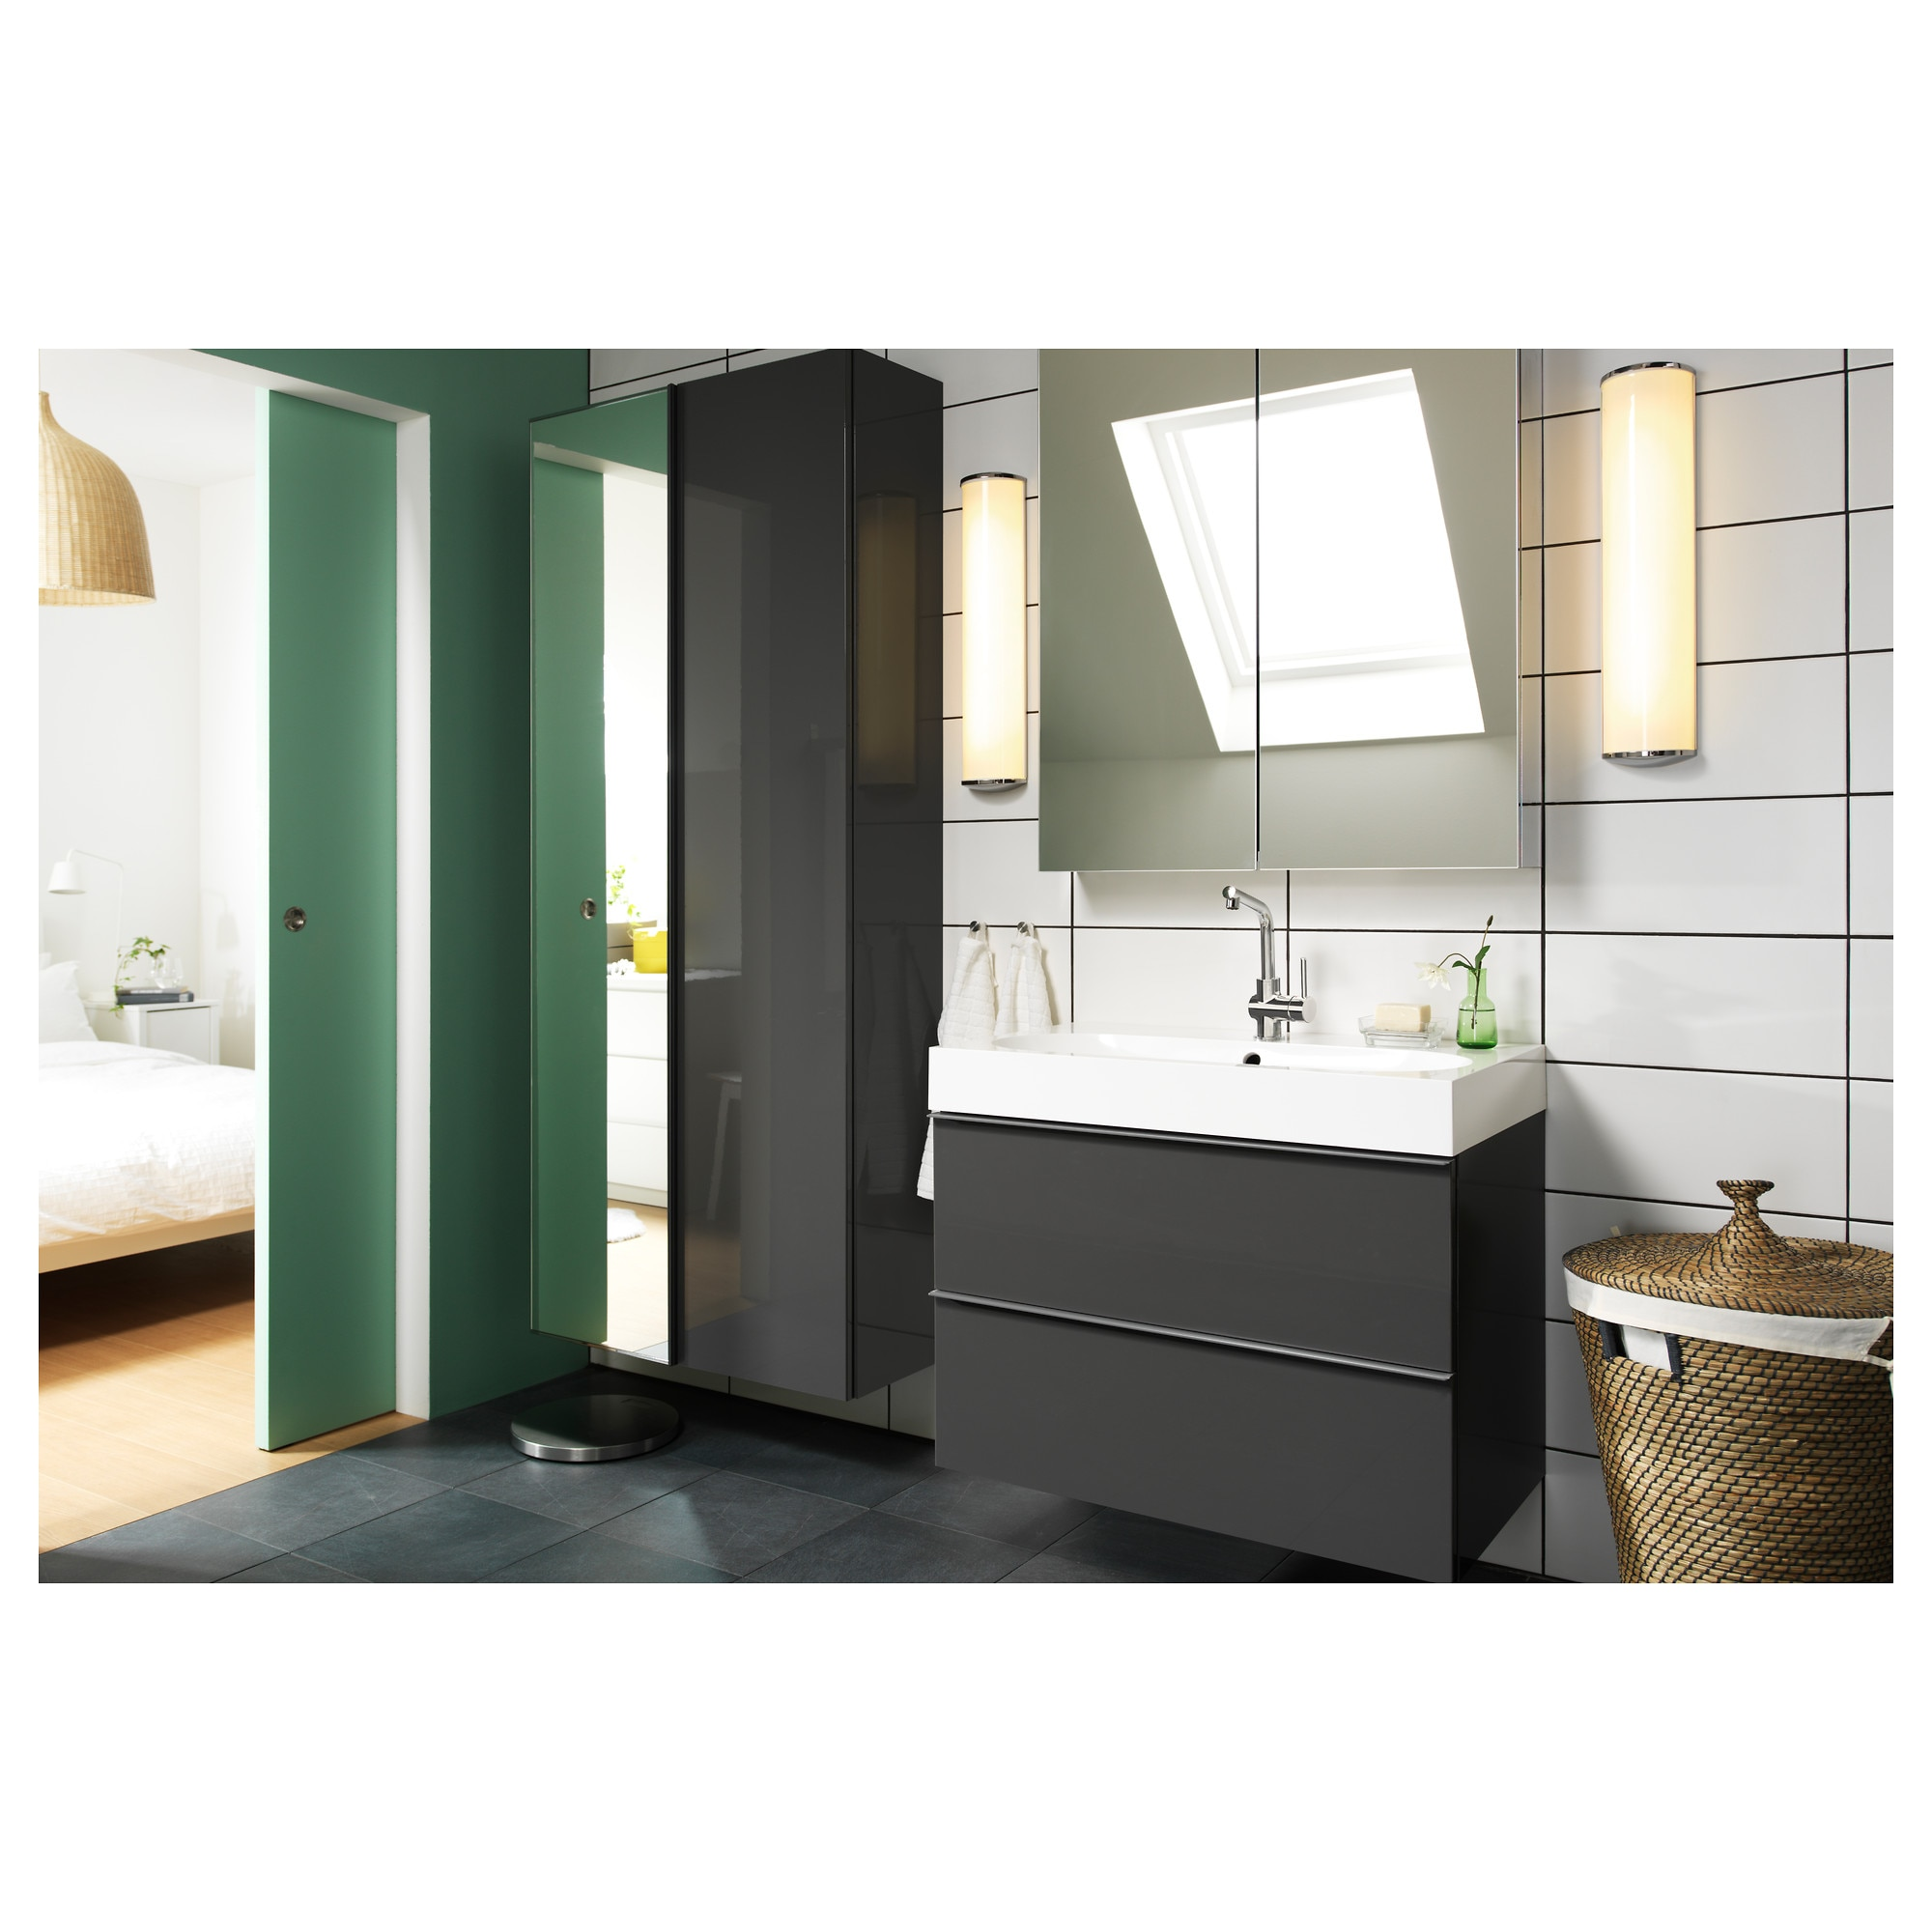 door light easy shelf products grey glass is godmorgon the en with ikea cabinets furniture and medicine remove bathroom clean gb kasj storage cabinet to wall